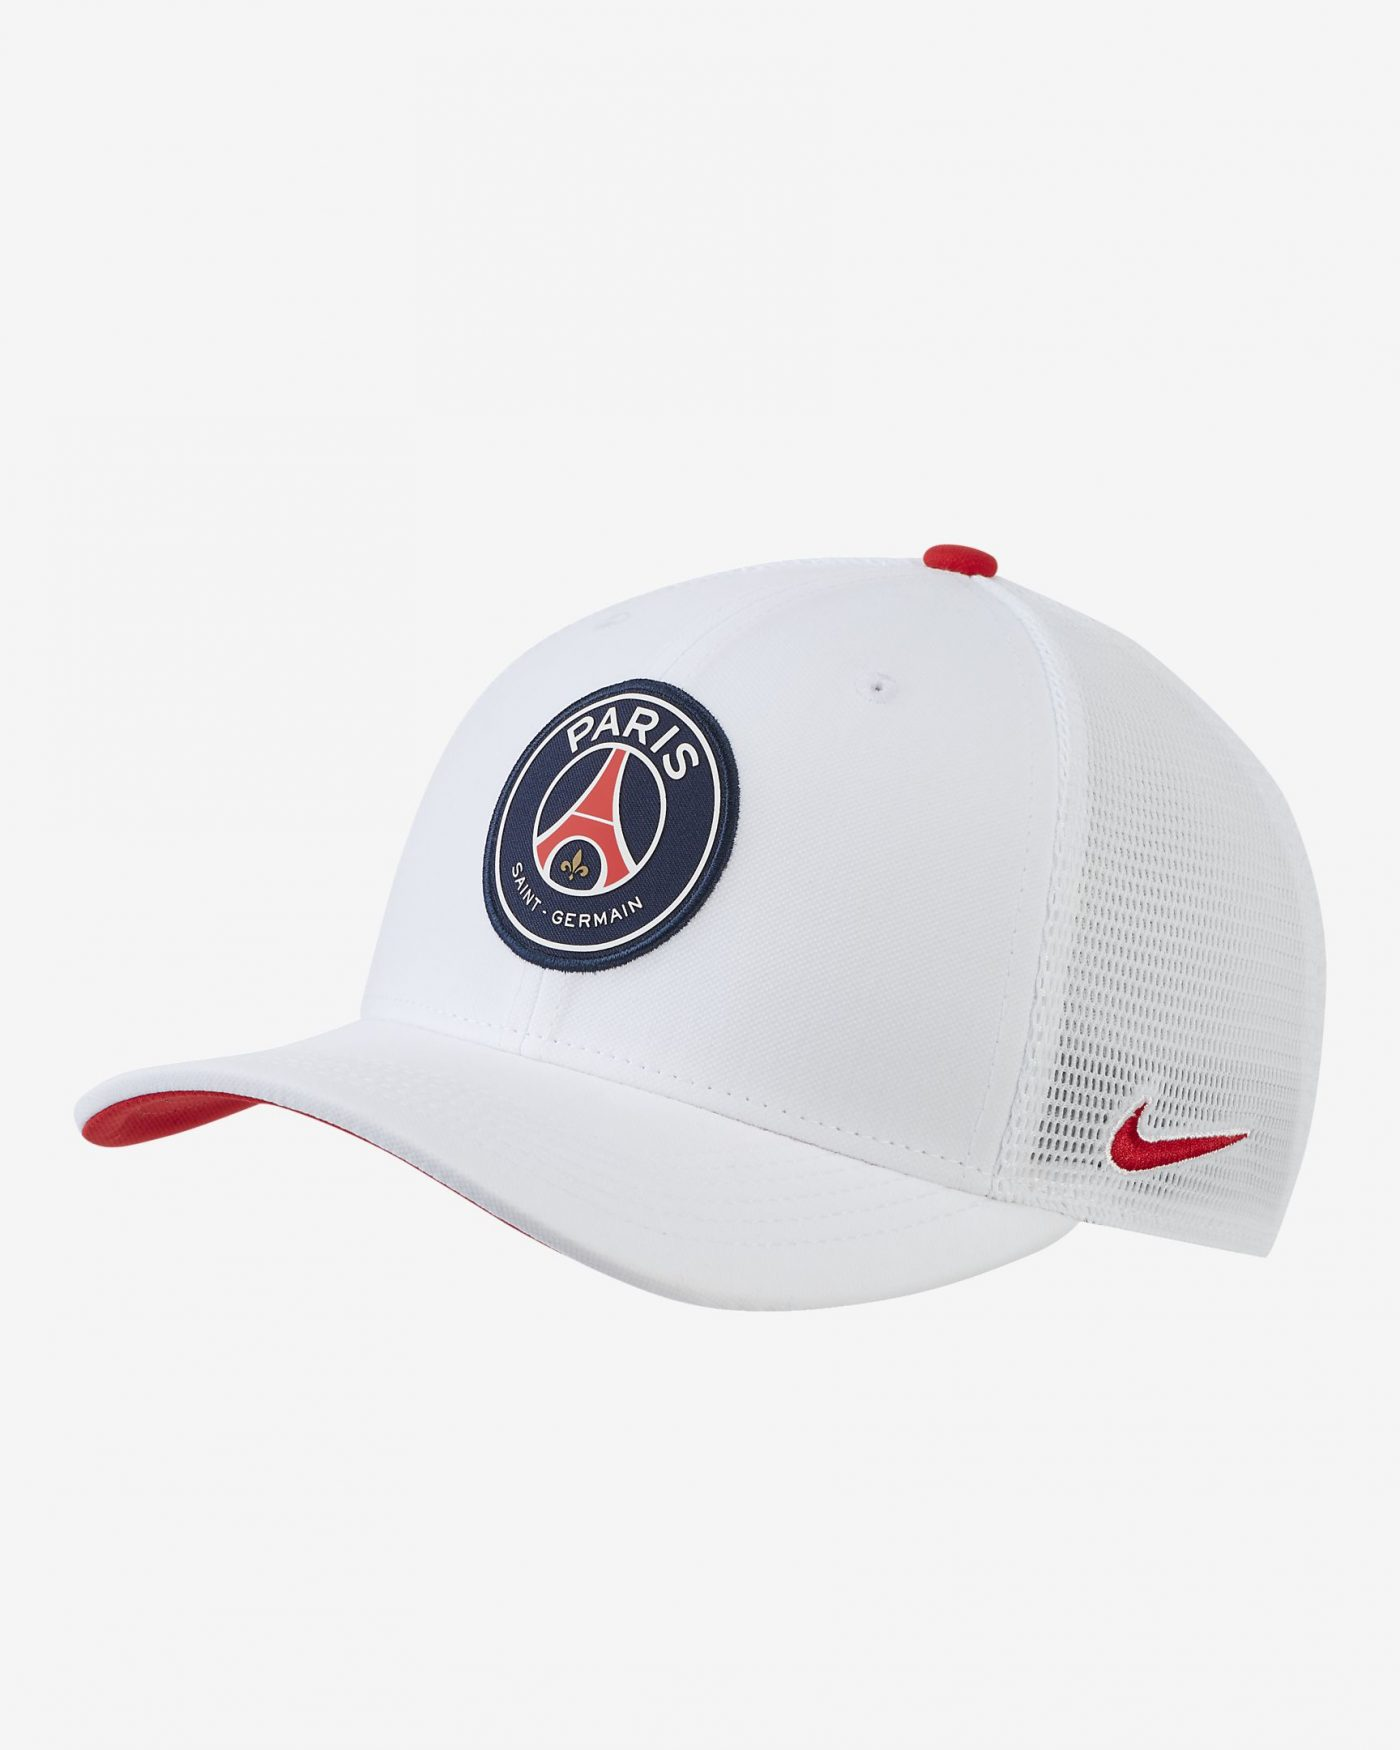 collection-lifestyle-psg-nike-2020-2021-1